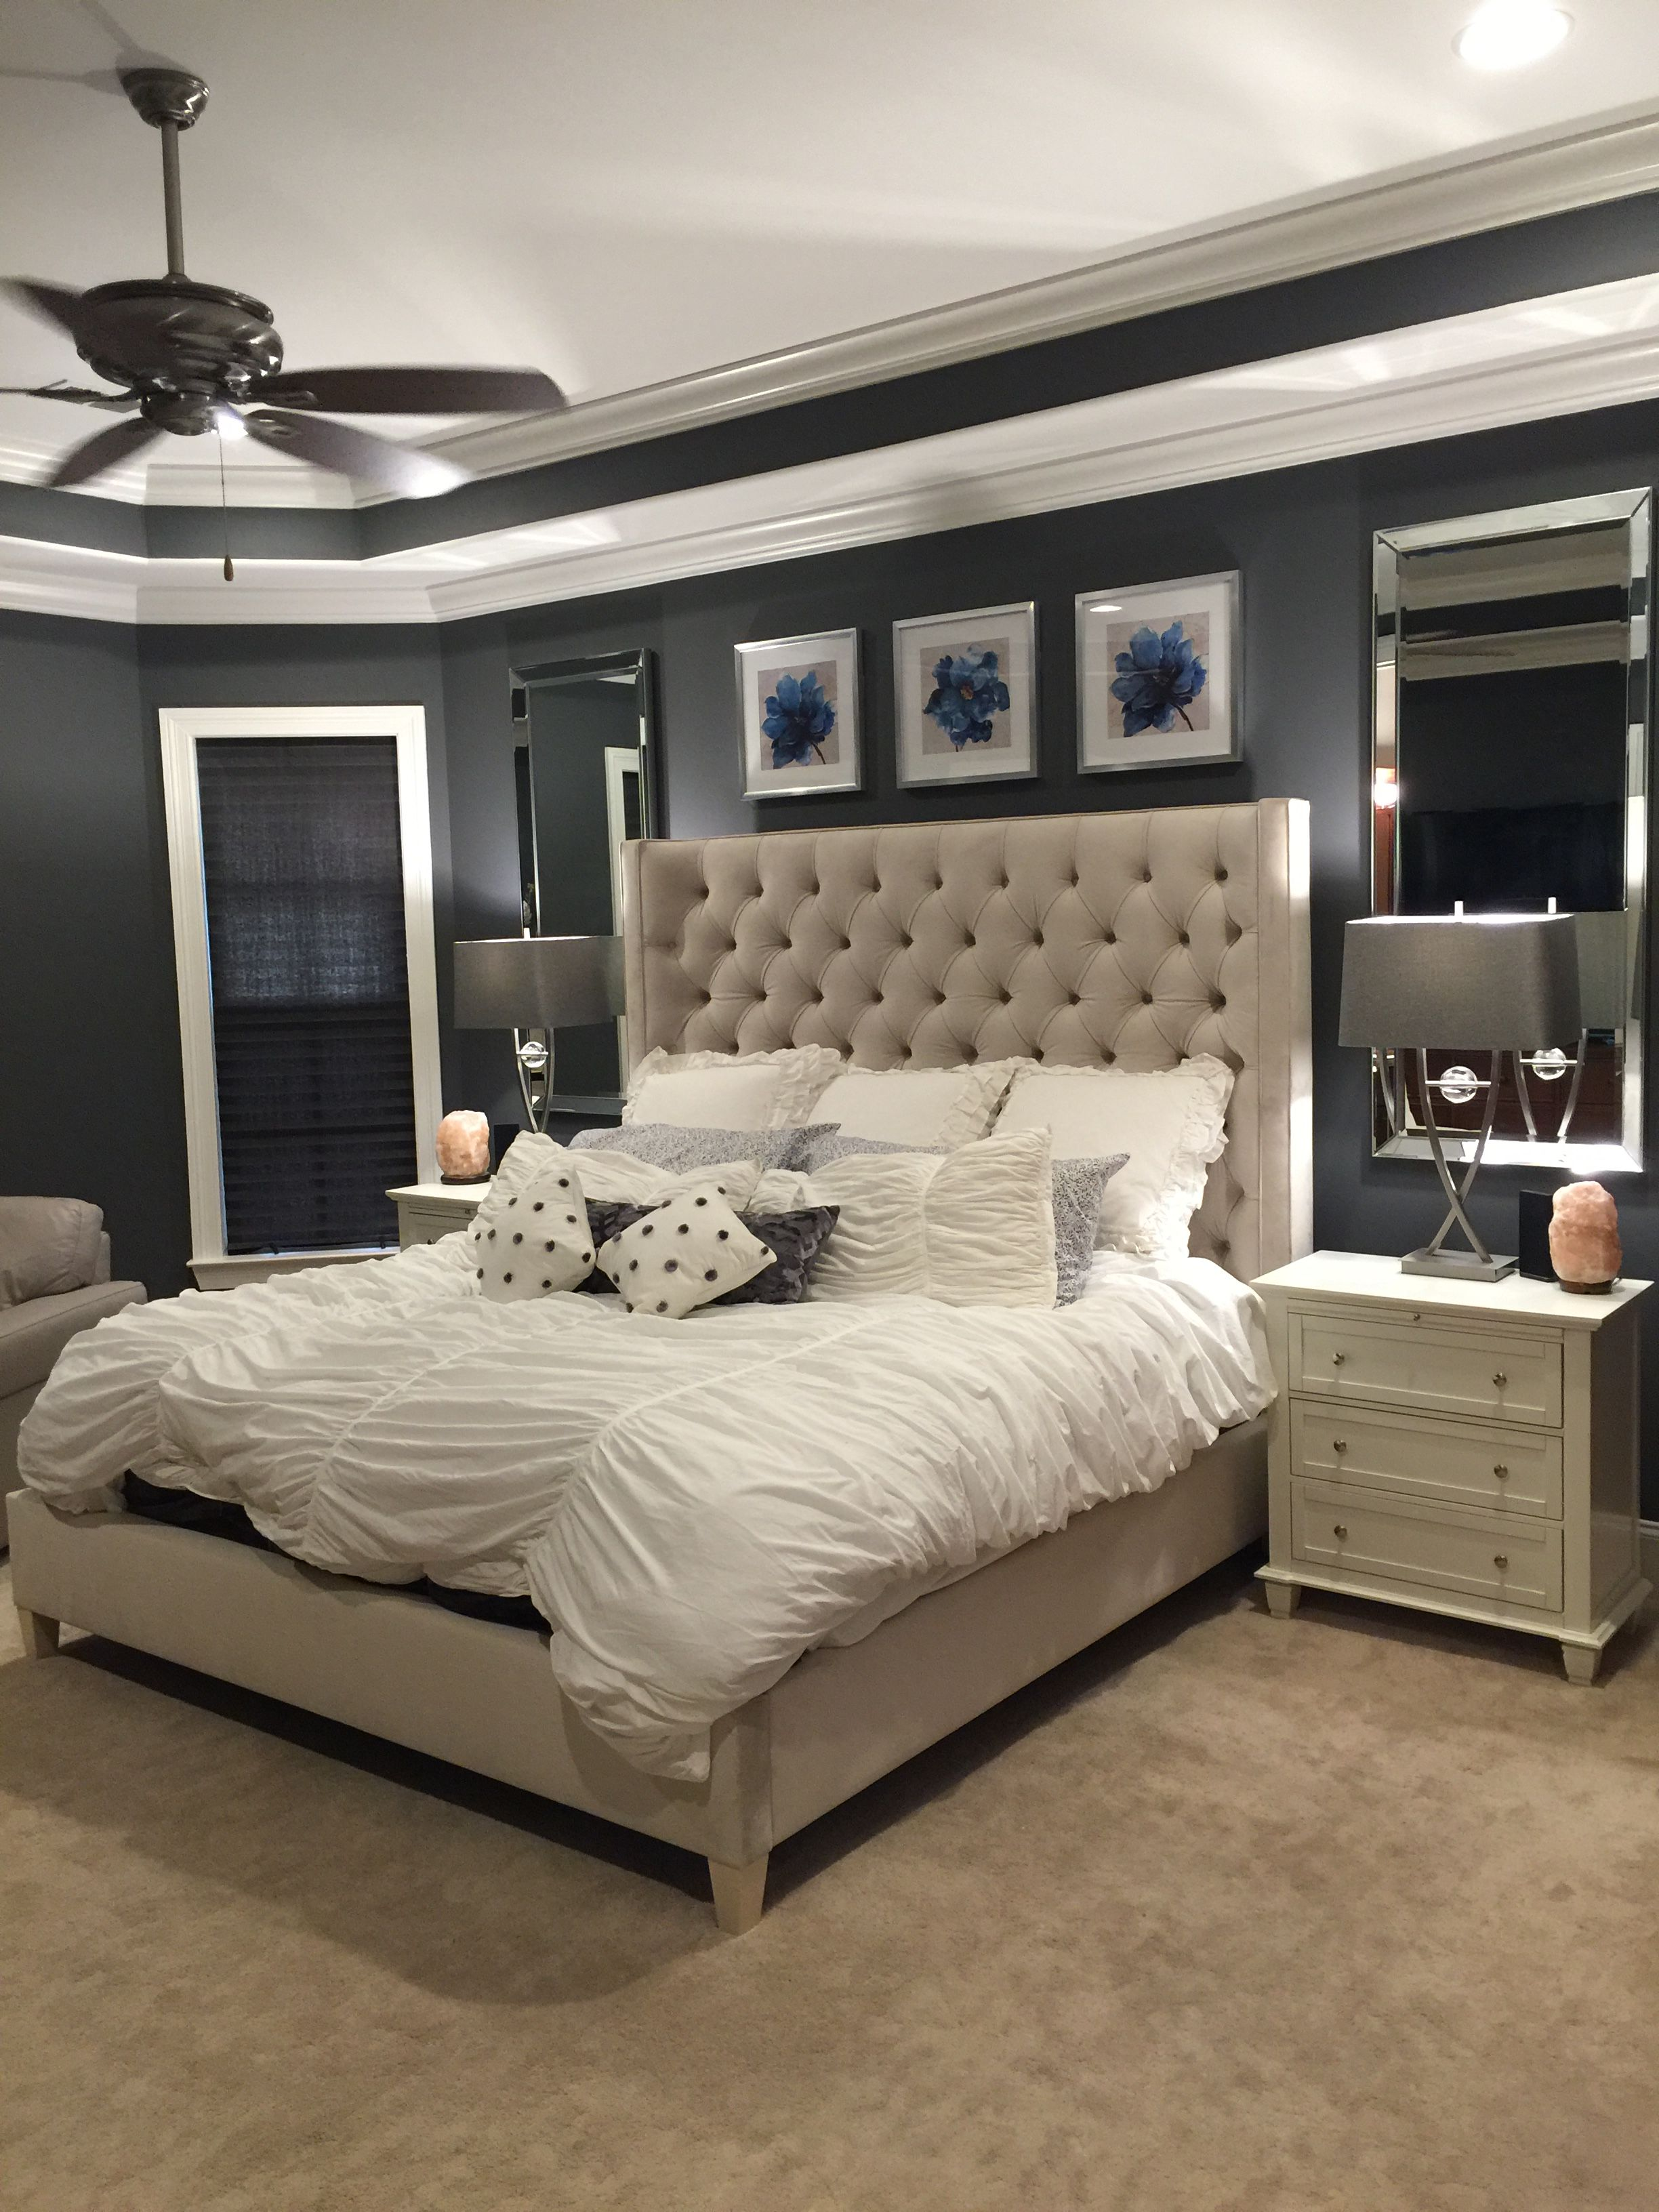 Serene Bedroom Bed By Bernhardt Lamps By Pacific Coast